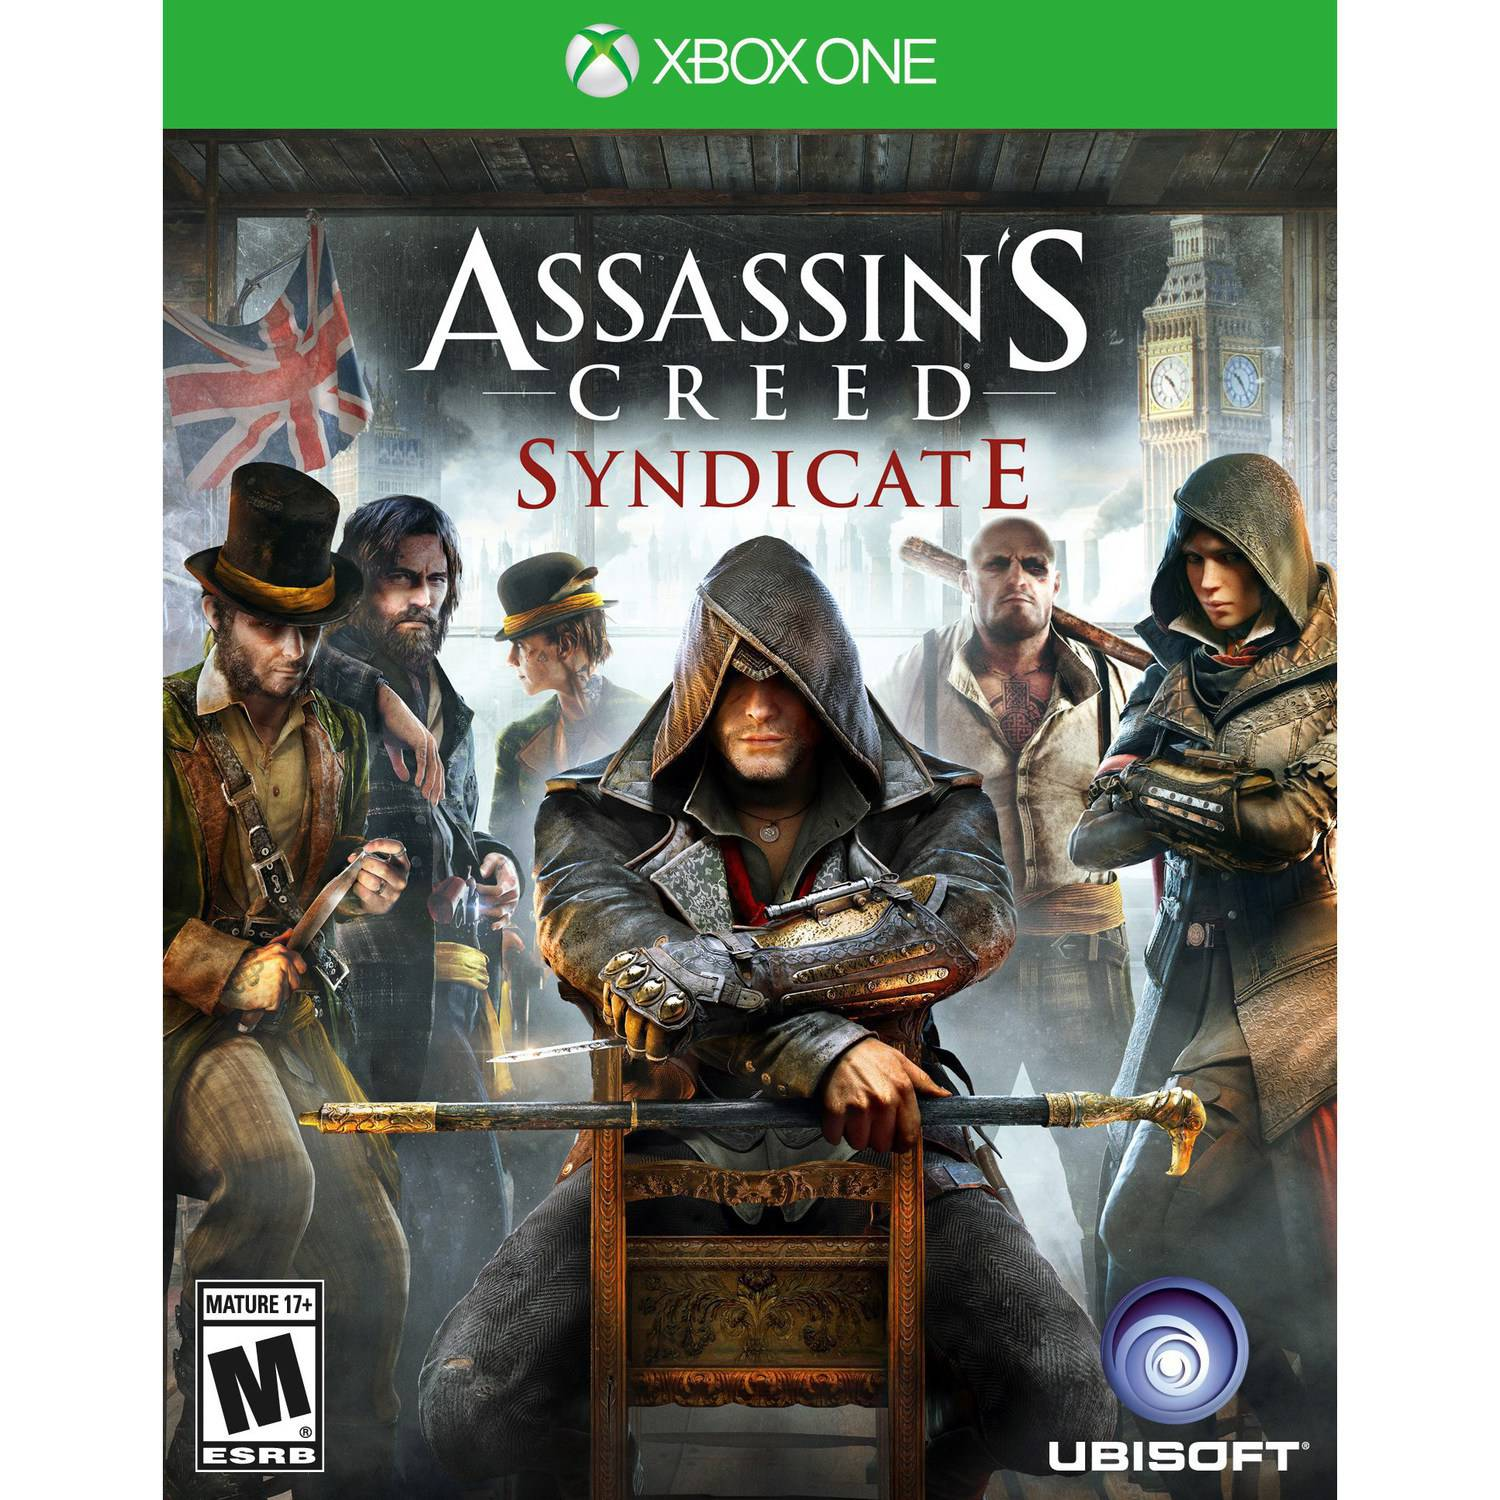 Assassin's Creed: Syndicate, Ubisoft, Xbox One, 887256014261